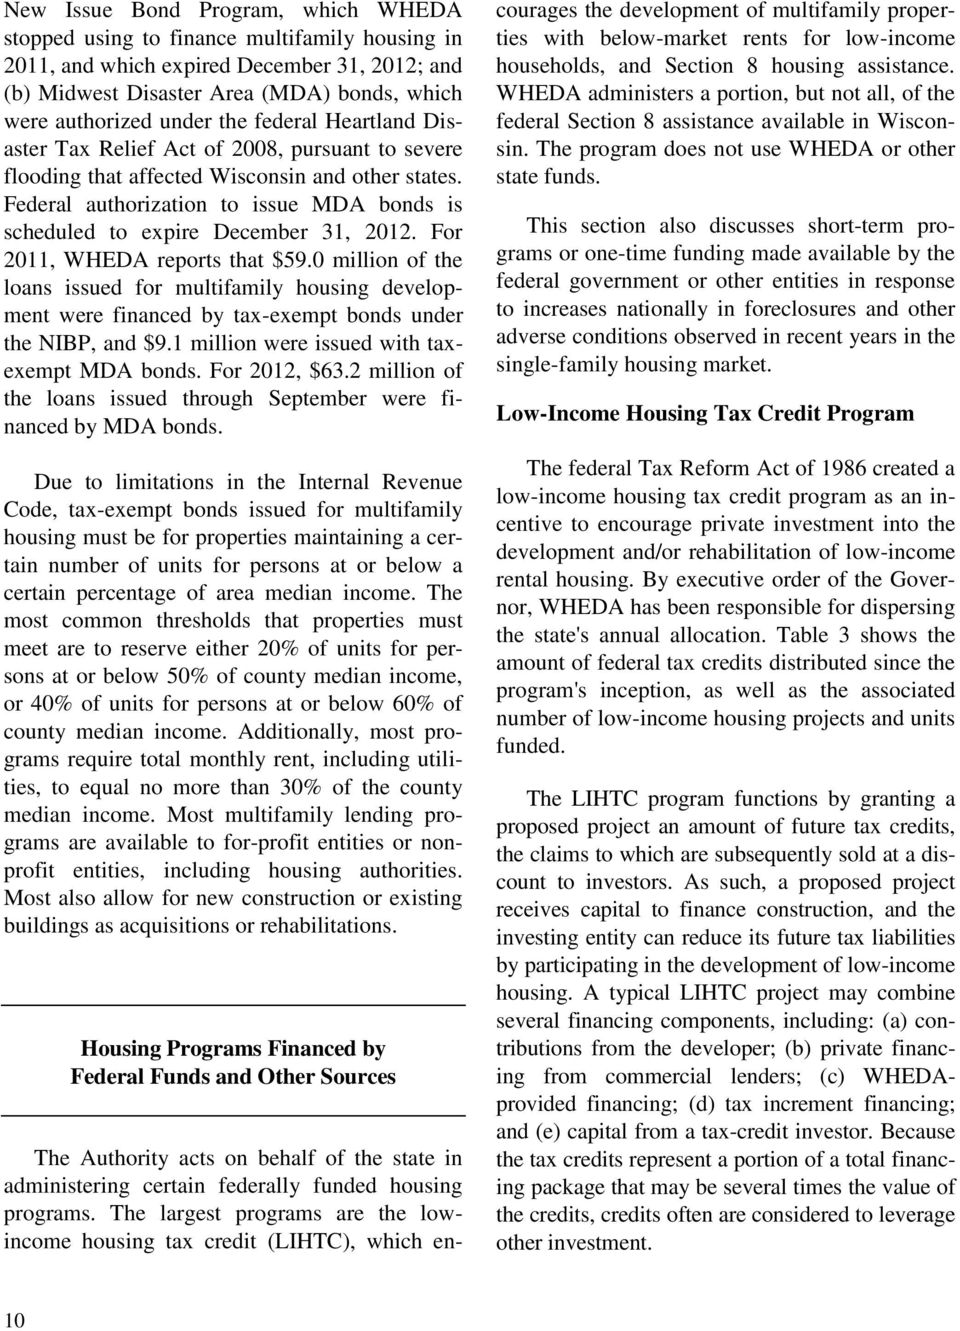 Federal authorization to issue MDA bonds is scheduled to expire December 31, 2012. For 2011, WHEDA reports that $59.